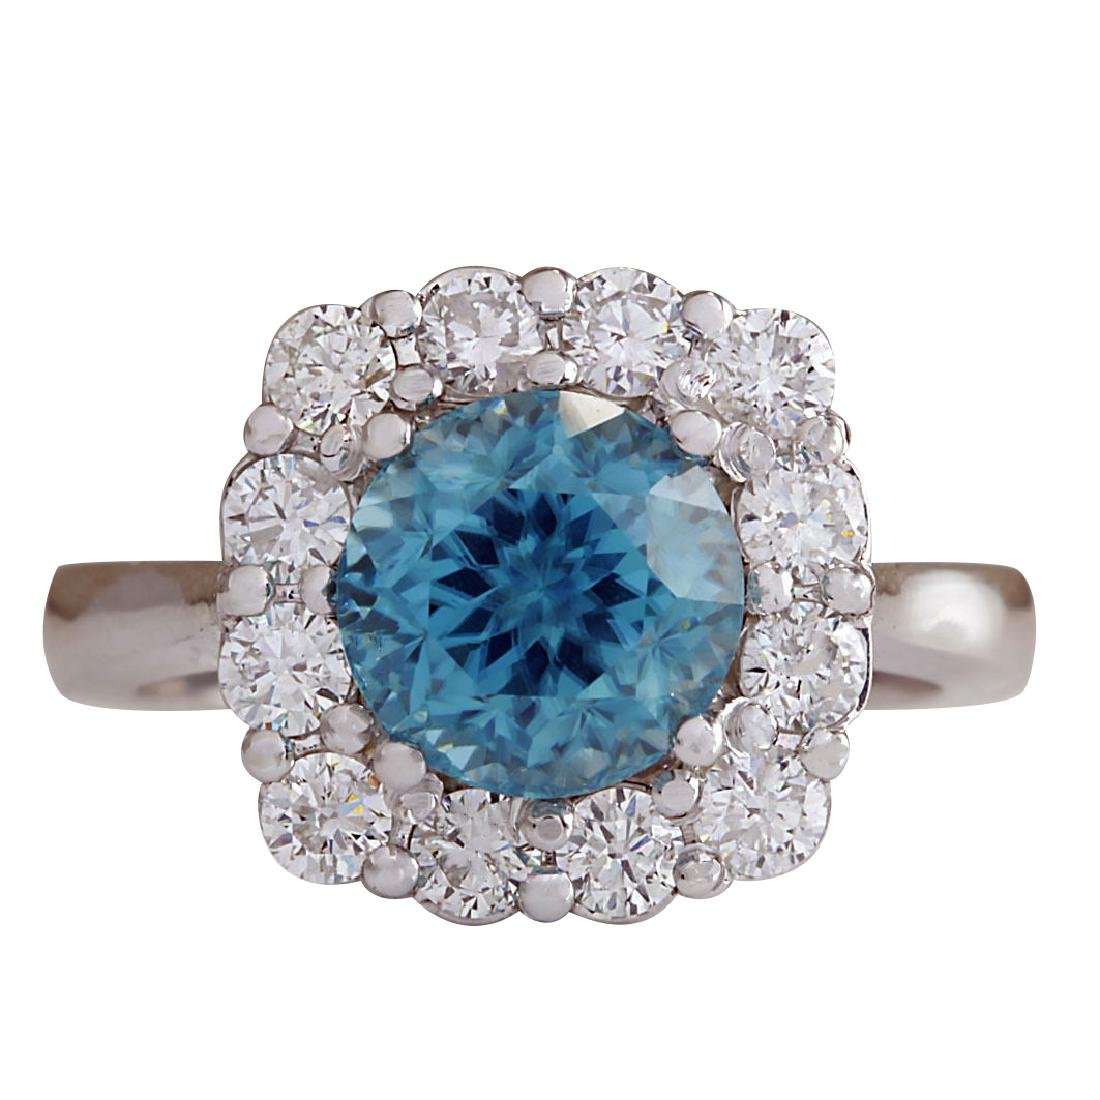 5.33CTW Natural Blue Zircon And Diamond Ring 18K Solid